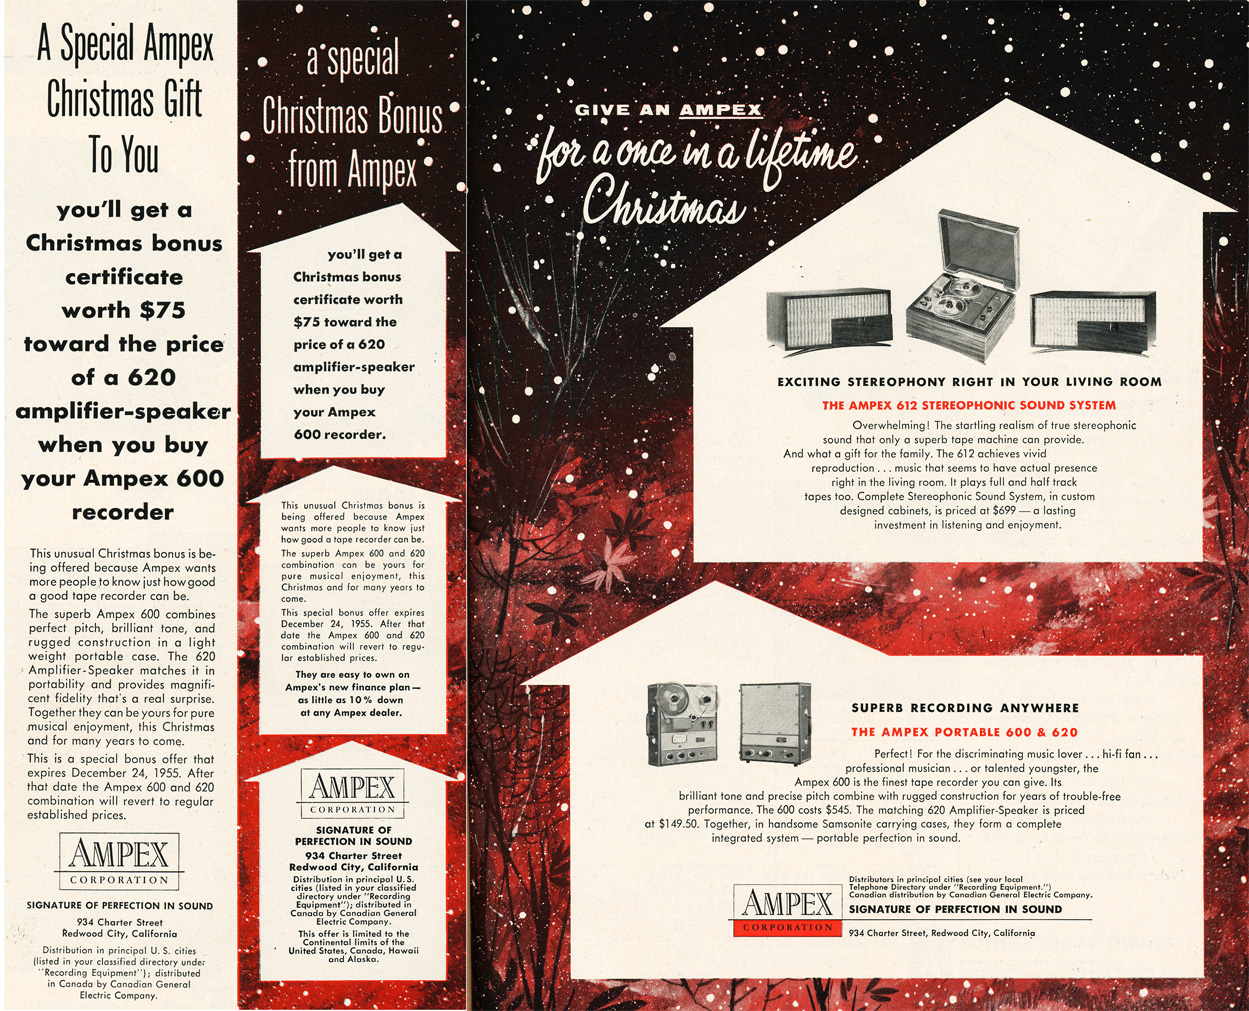 1955 Christmas ad for Ampex reel to reel tape recorder in Reel2ReelTexas.com's vintage recording collection